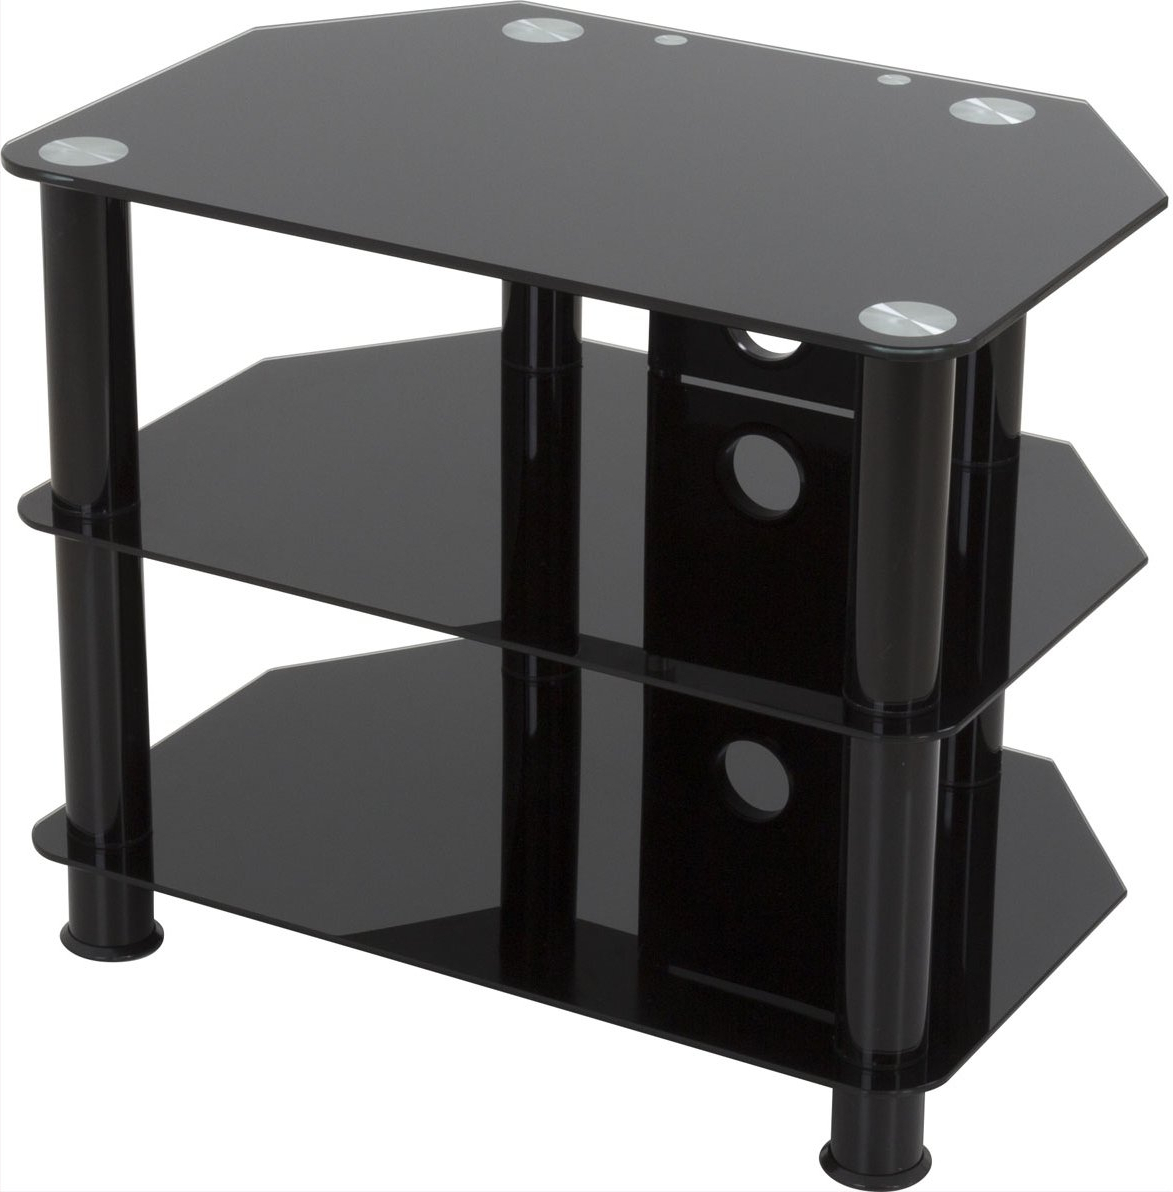 Avf Sdc600cmbb Tv Stands Within Latest Black Glass Tv Stands (View 5 of 20)